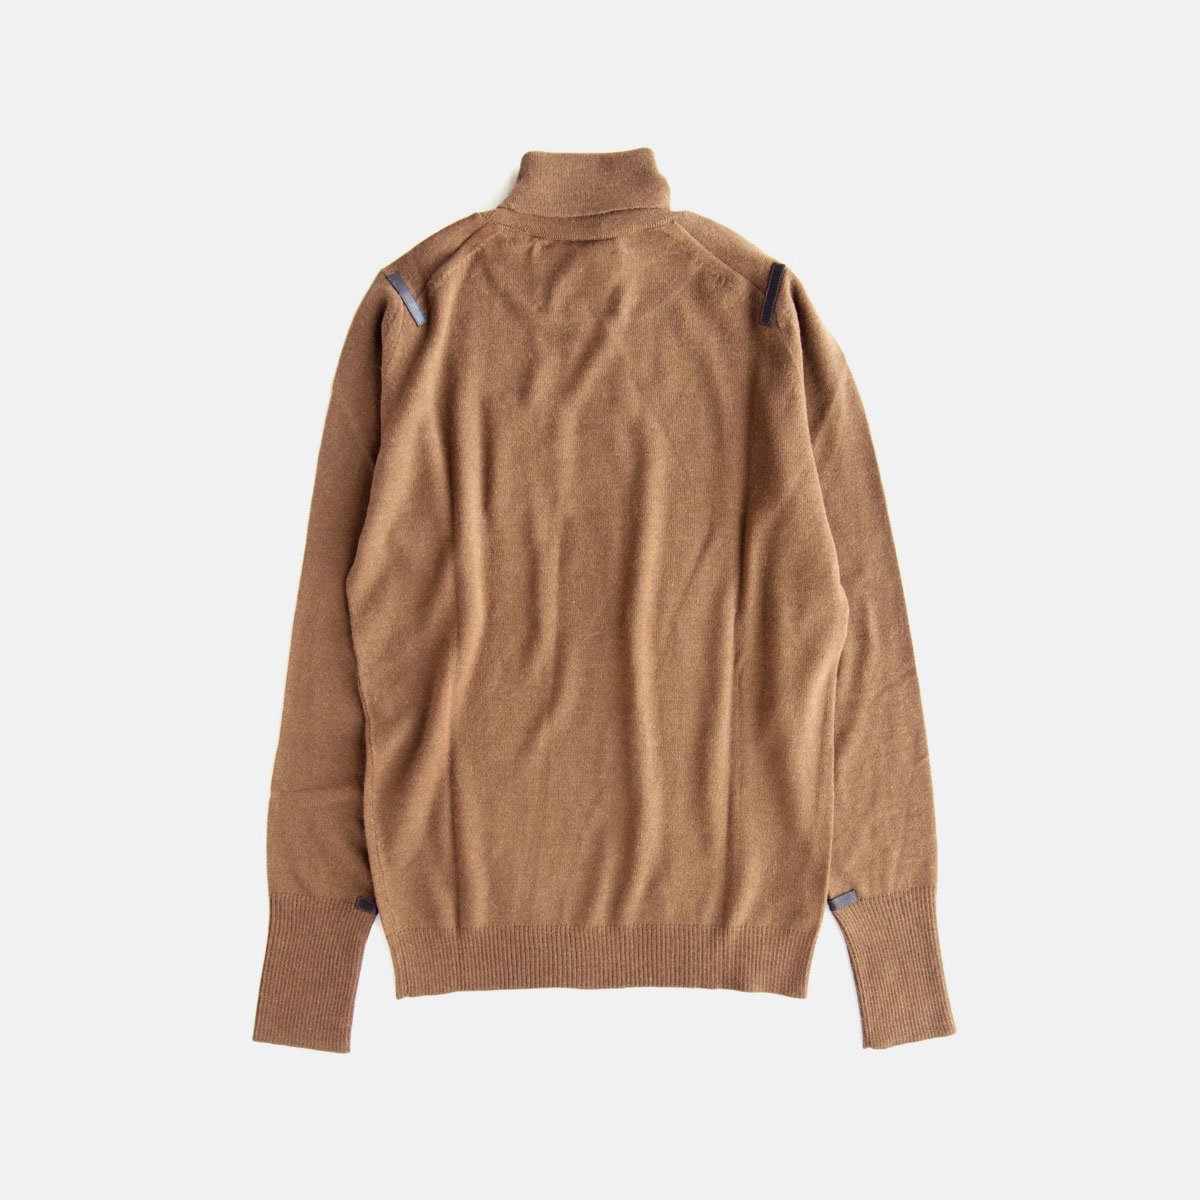 THE INOUE BROTHERS…  Turtle Neck Pullover (Camel)2